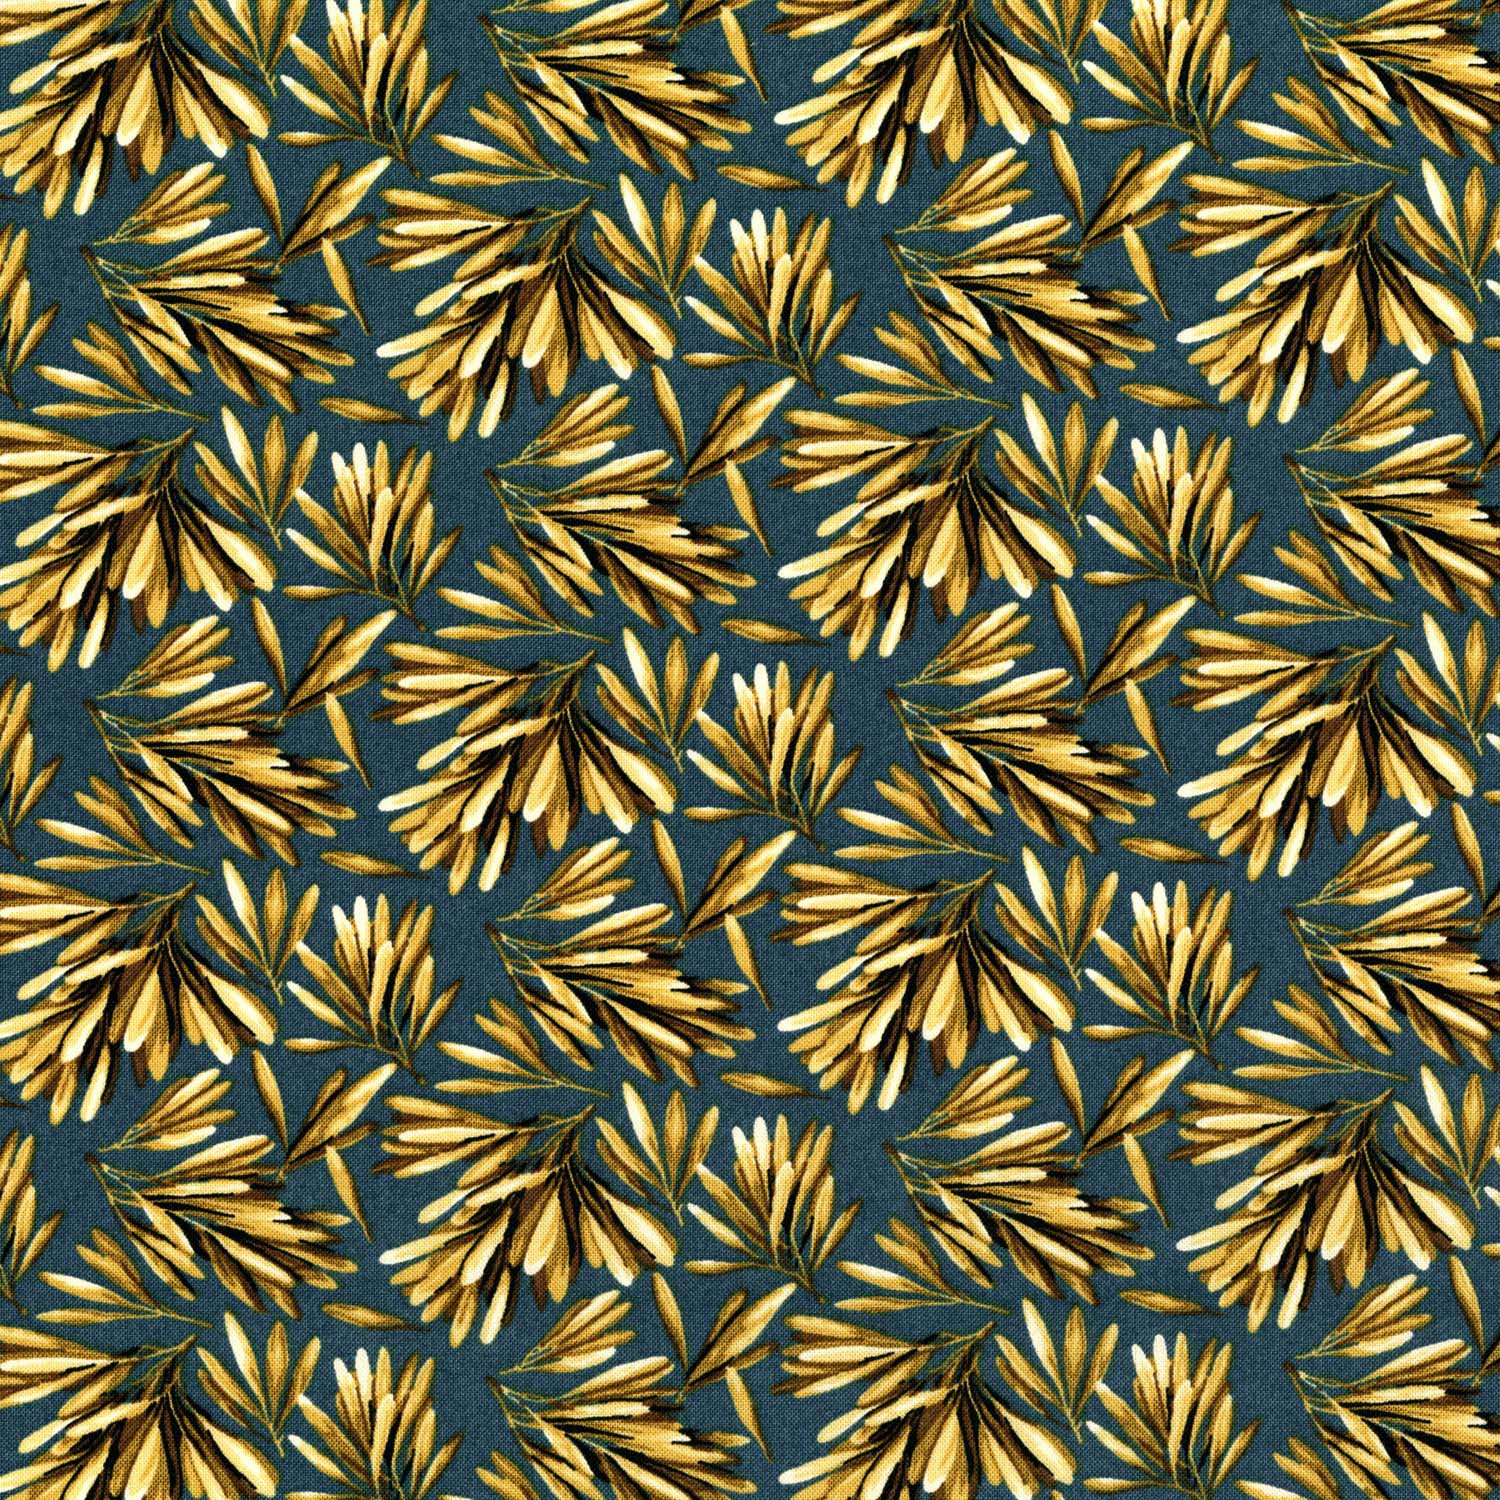 2838-002 SEED PODS - NAVY